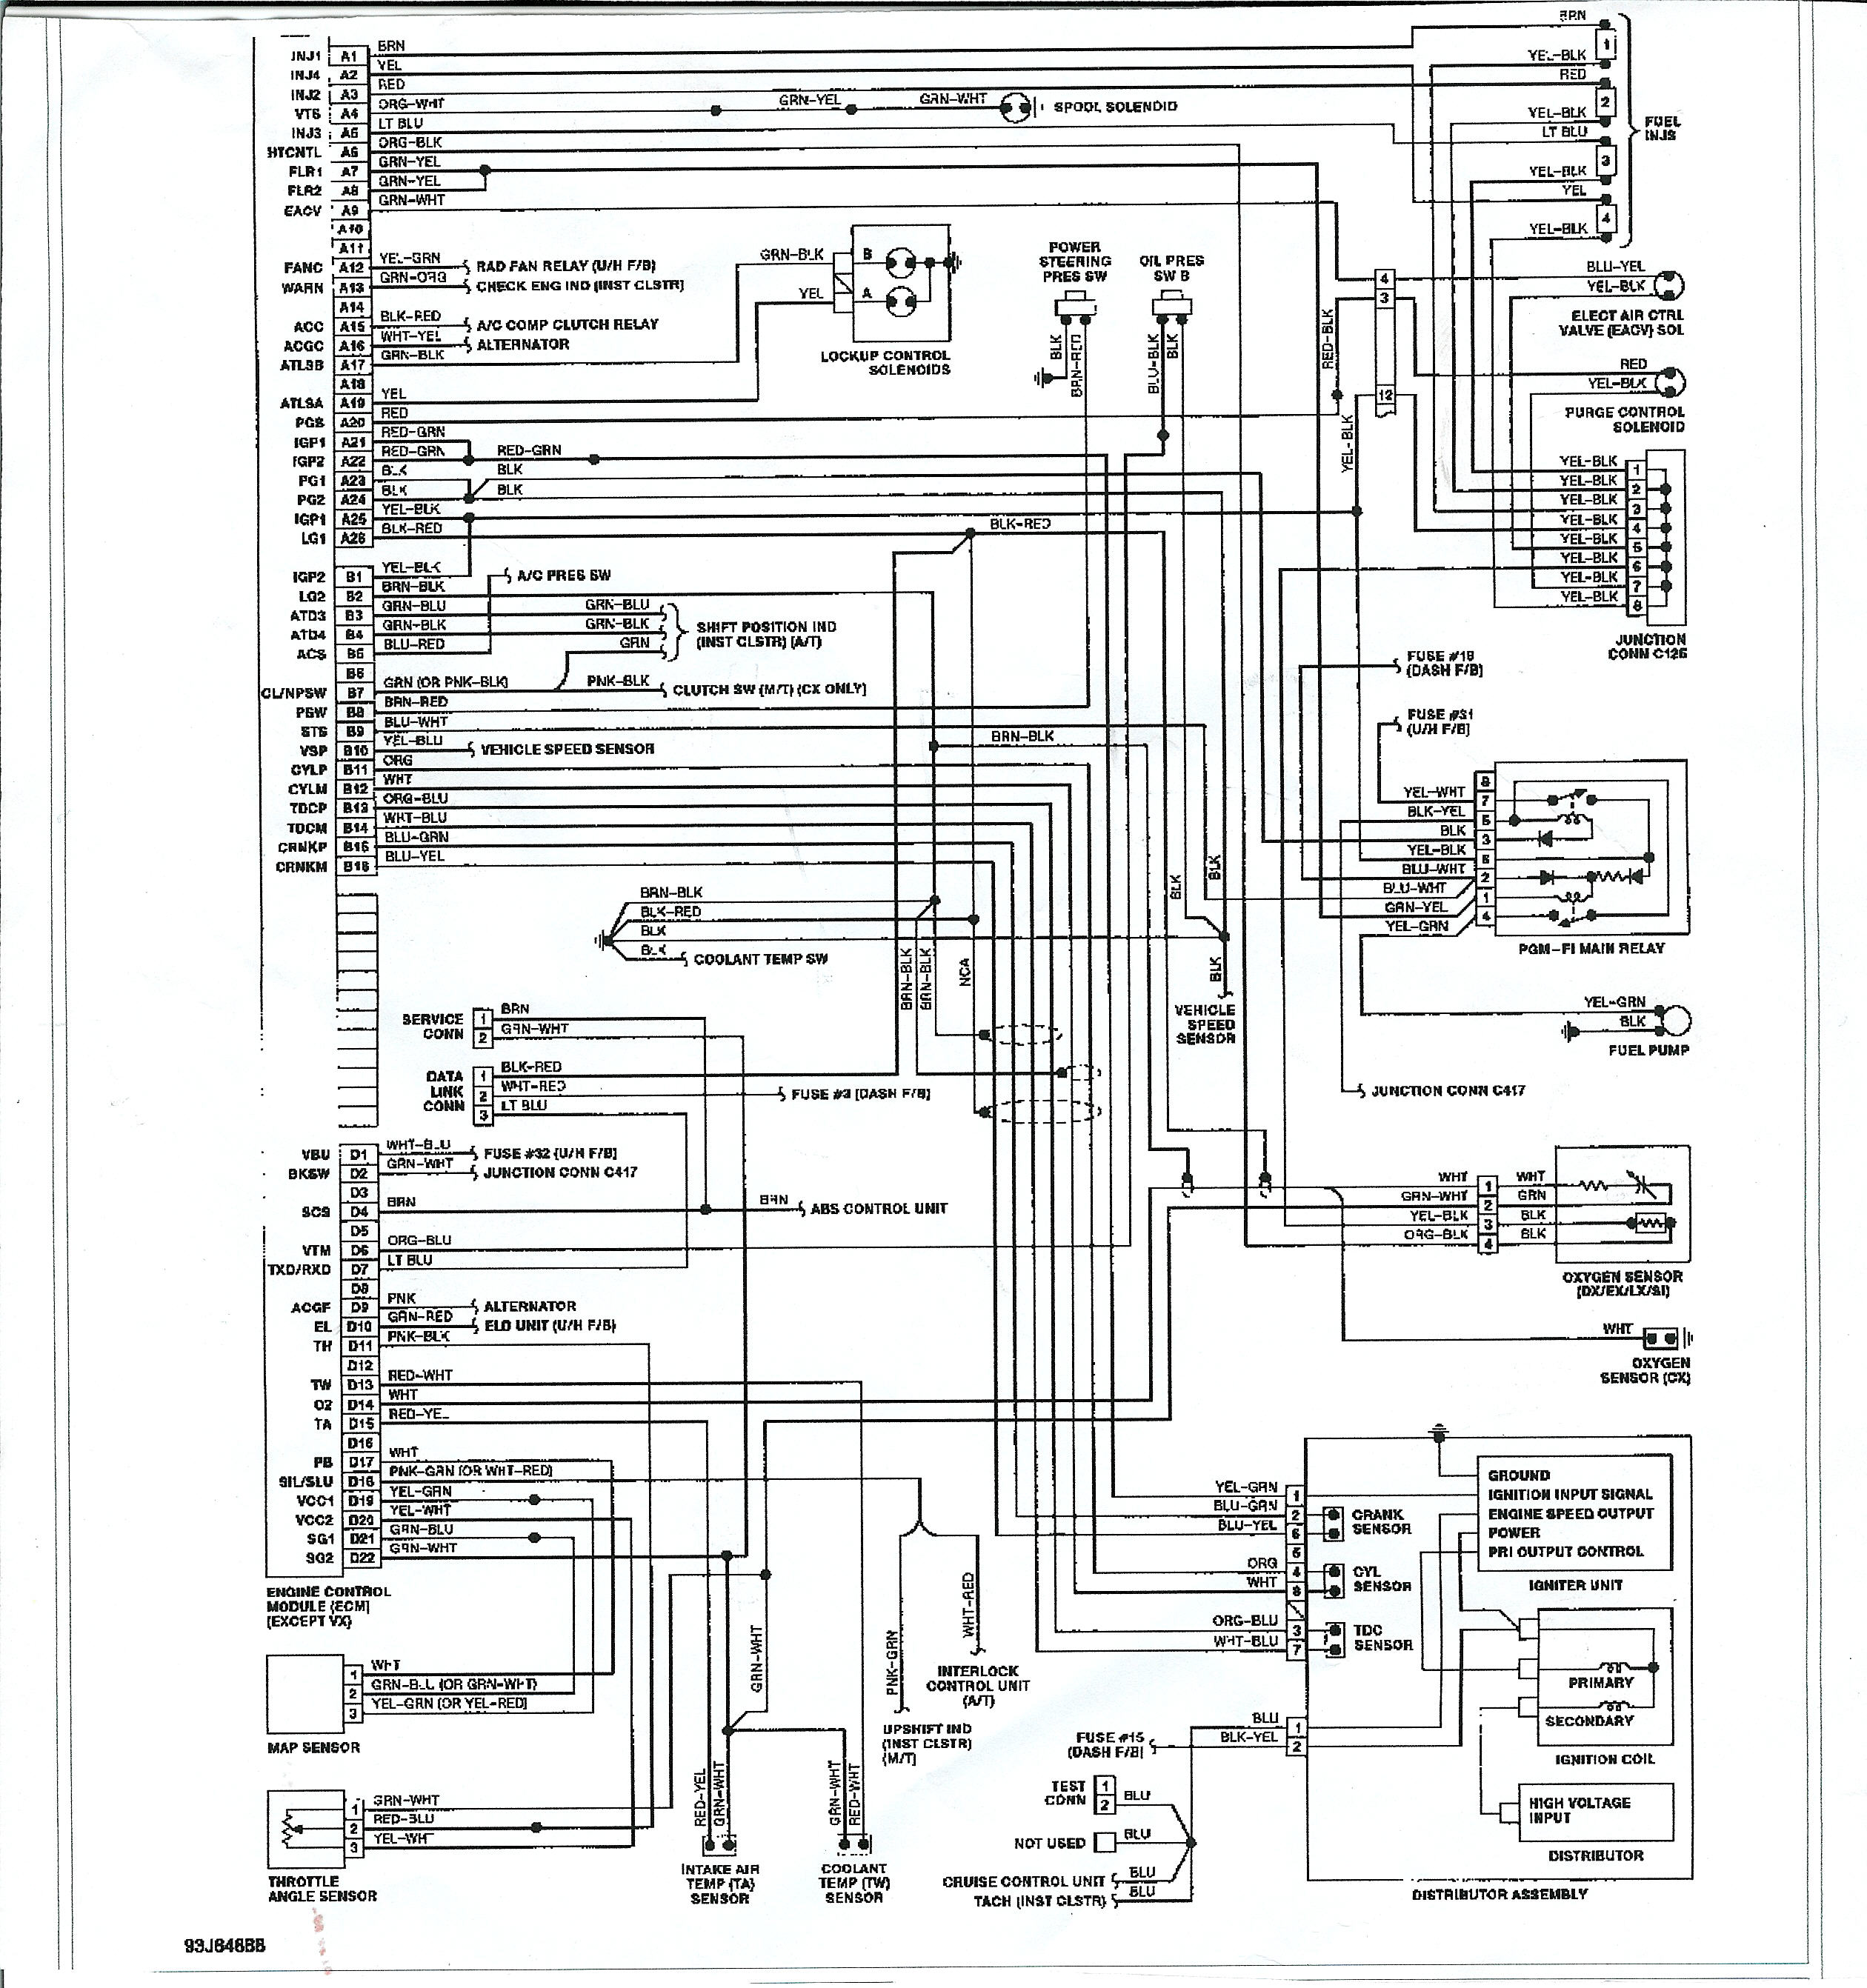 2000 honda civic ex wiring diagram apexi rsm integra tcm schematic for auto swap tech